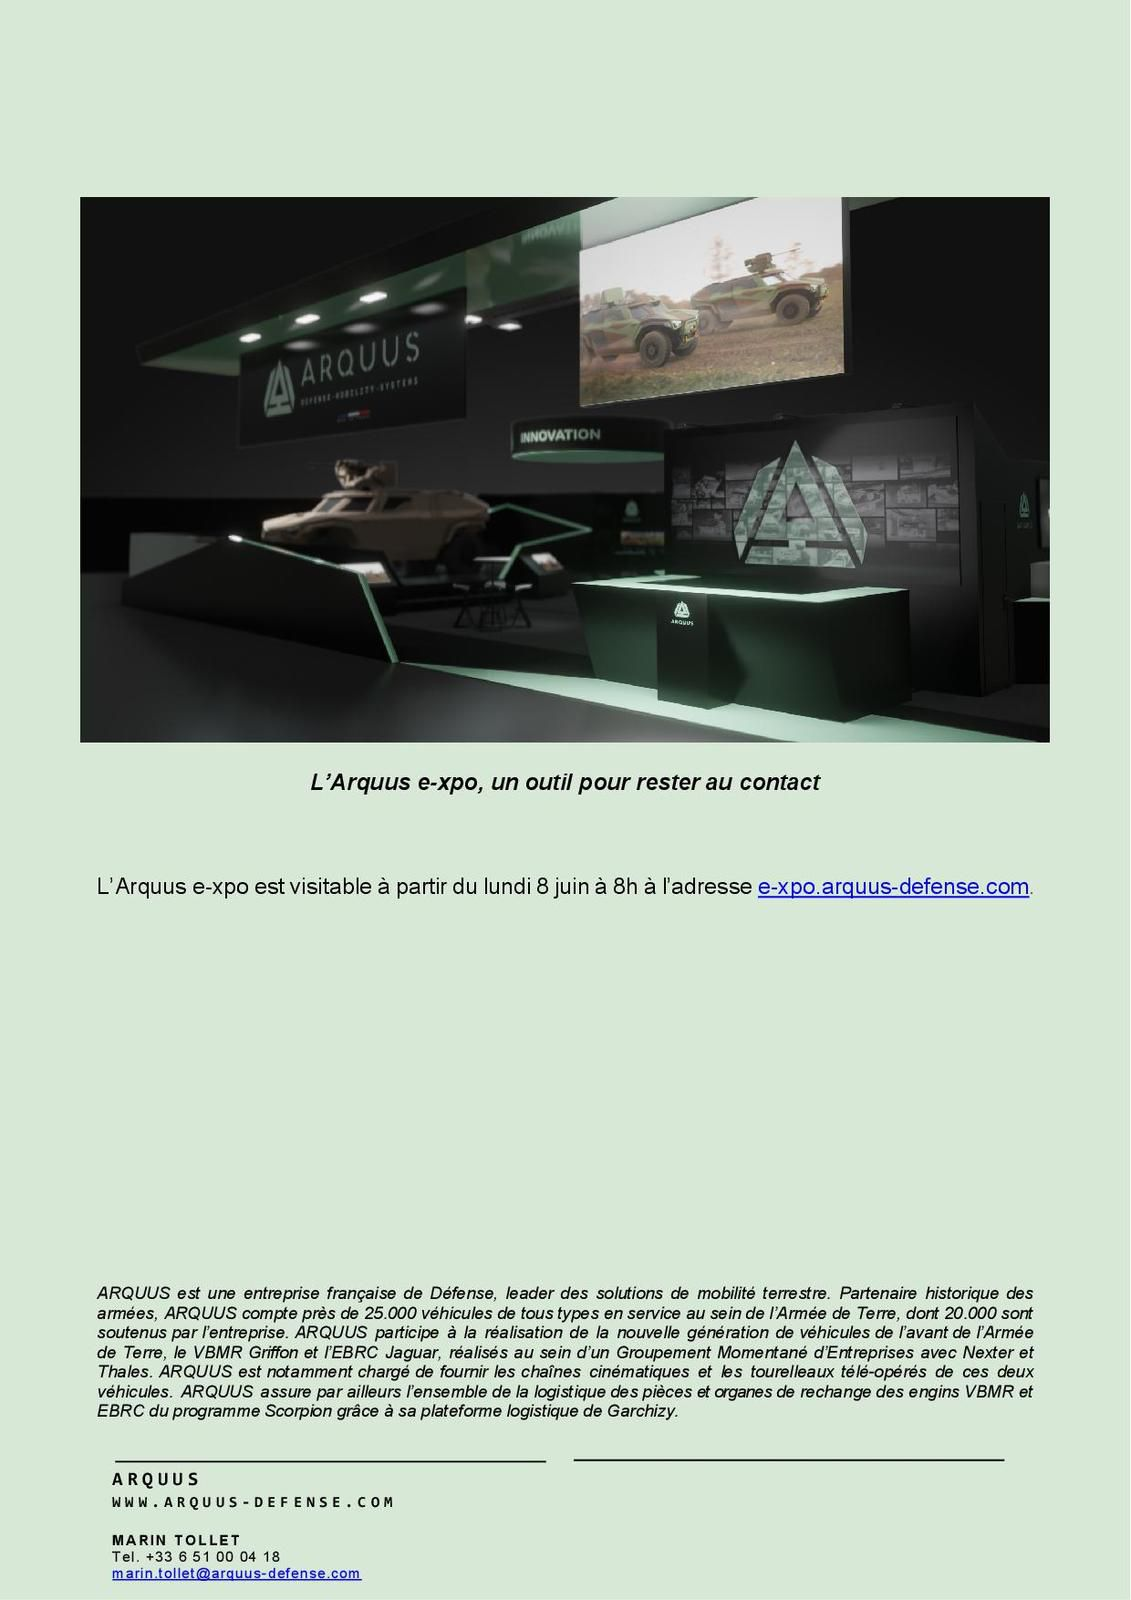 ARQUUS s'expose dans un salon virtuel